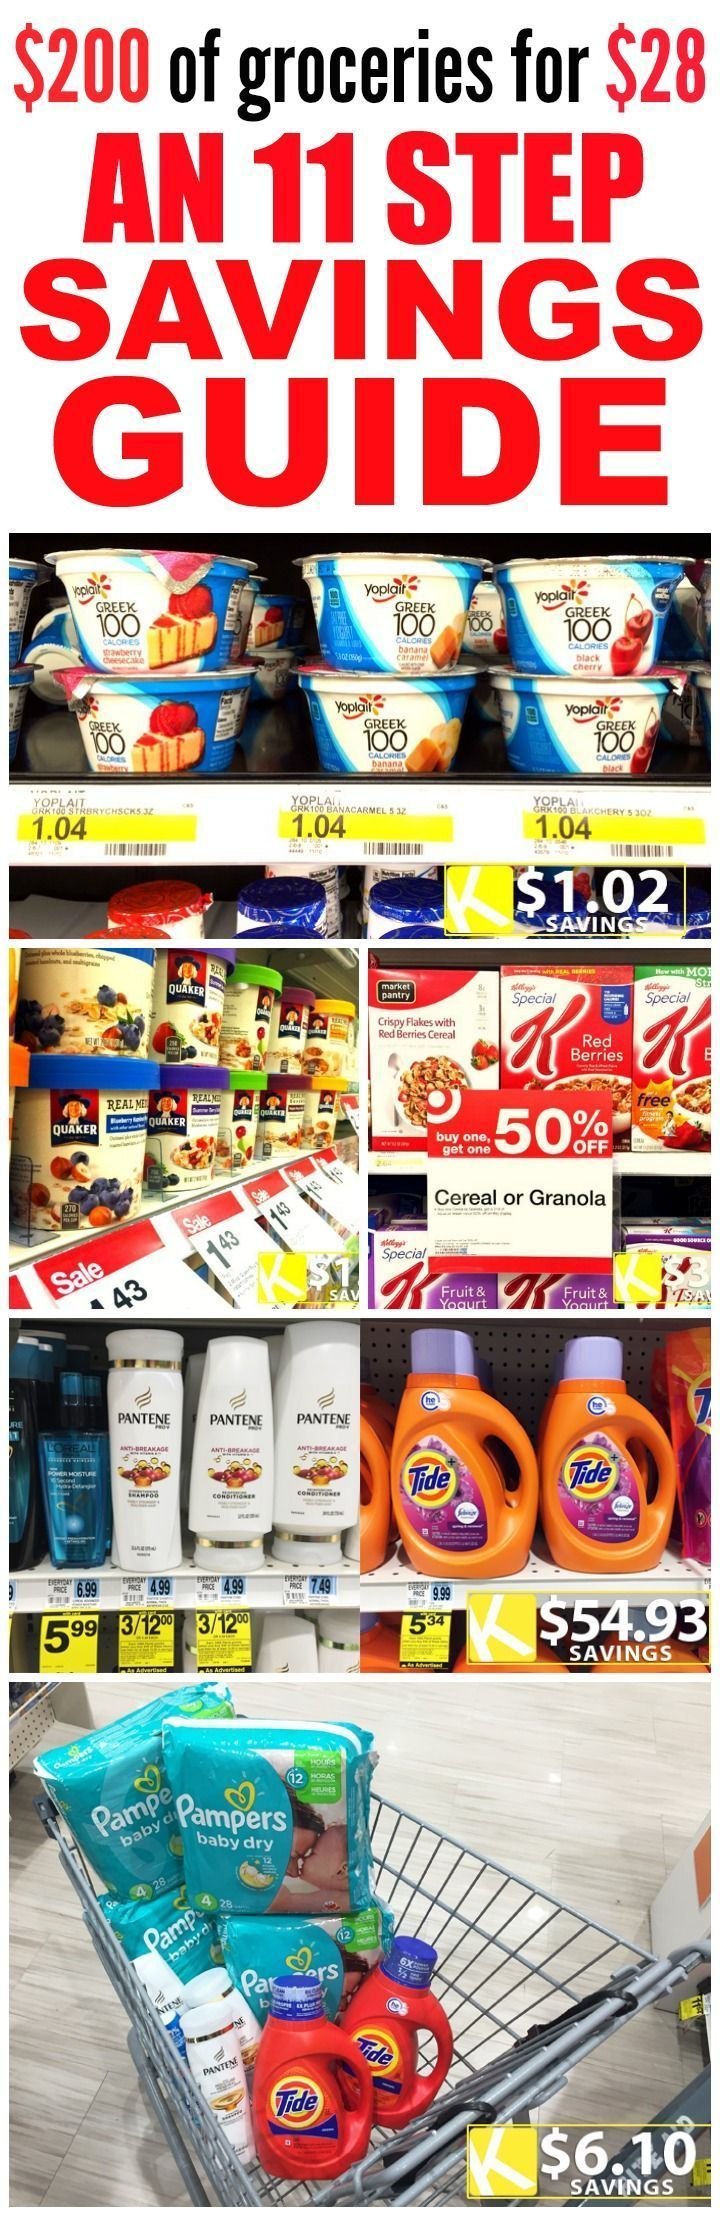 These 6 of the Best Krazy Coupon Lady posts Hacks and Guides are SO GOOD! I'm so glad I found these AMAZING tips! It'll help me save a TON of money at the store! Definitely pinning for later! Grab your FREE Amazon Discount Finder Chrome Extension: http://youreallywantthis.com/FreeAmazonDiscountChromeExt